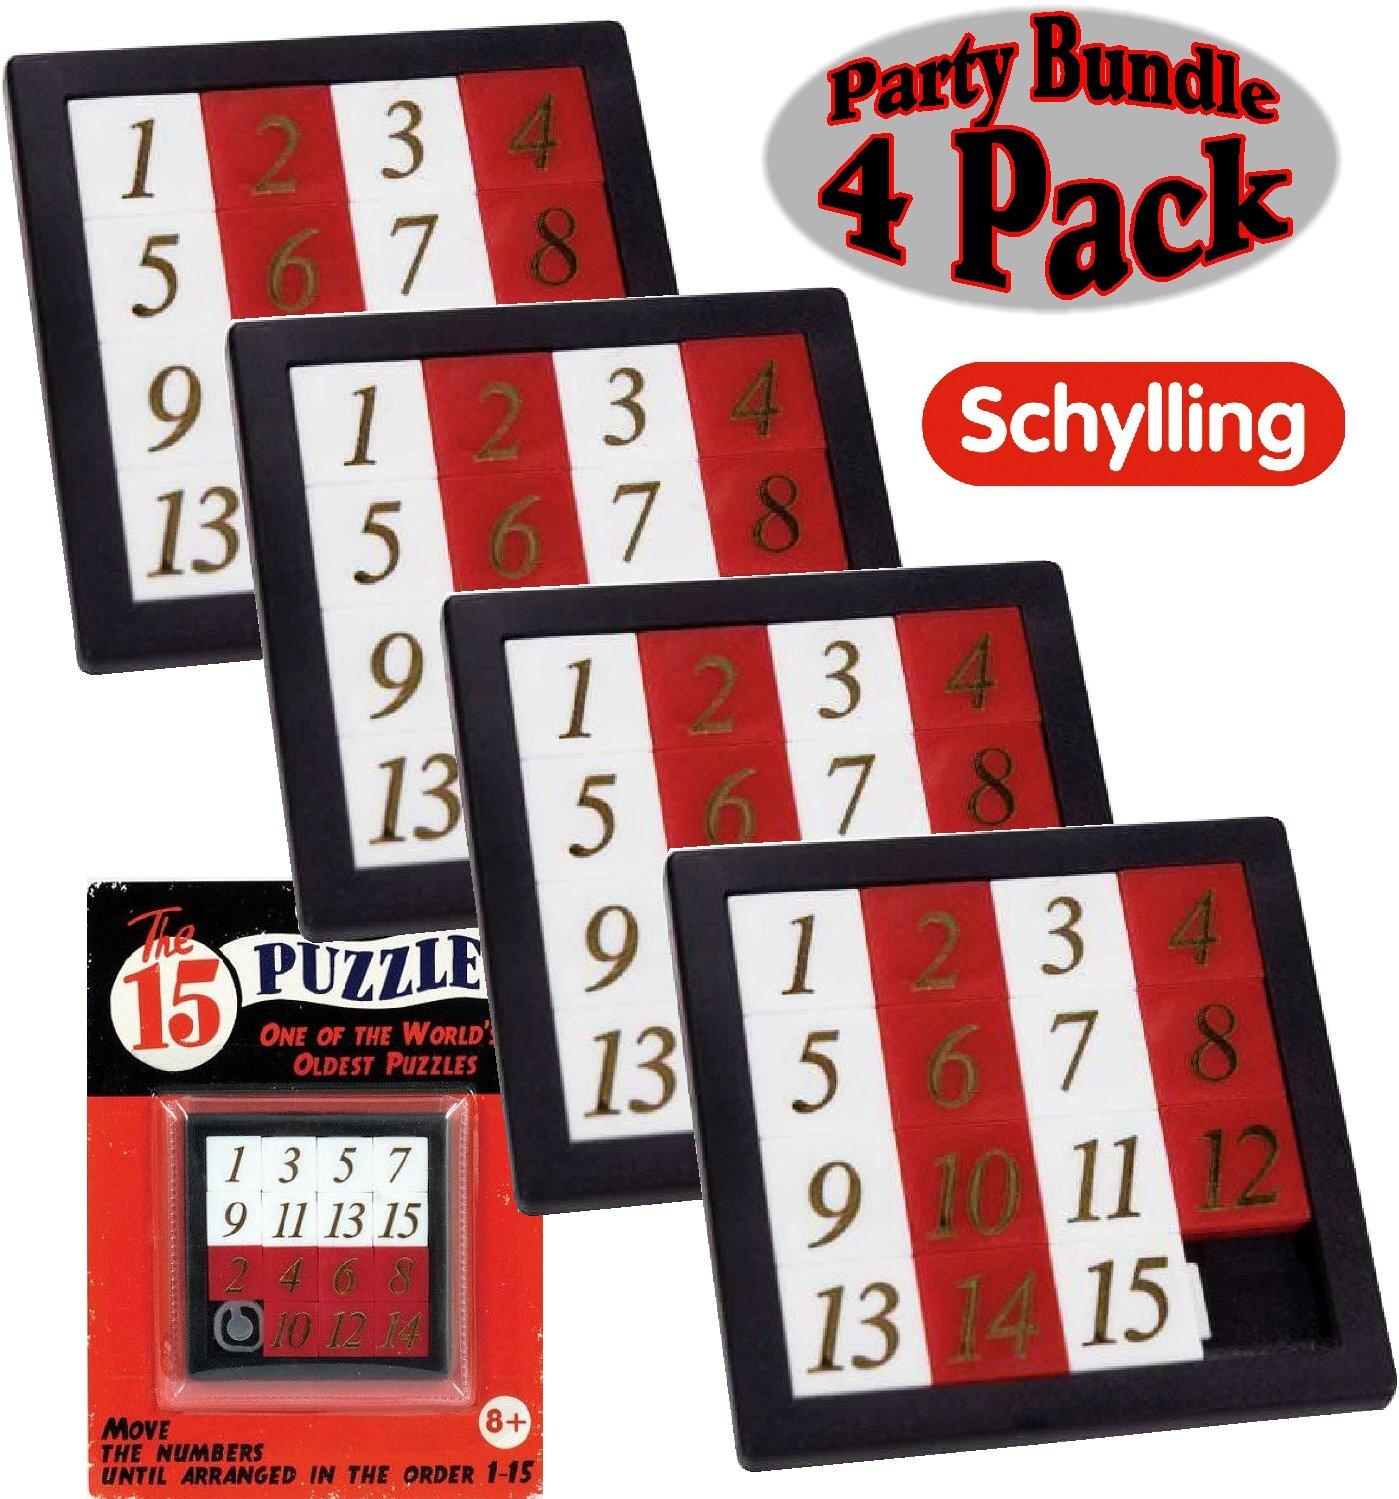 Schylling The 15 Puzzle (Number Slide Brain Teaser) with Clear Carry Case Party Bundle - 4 Pack by Schylling